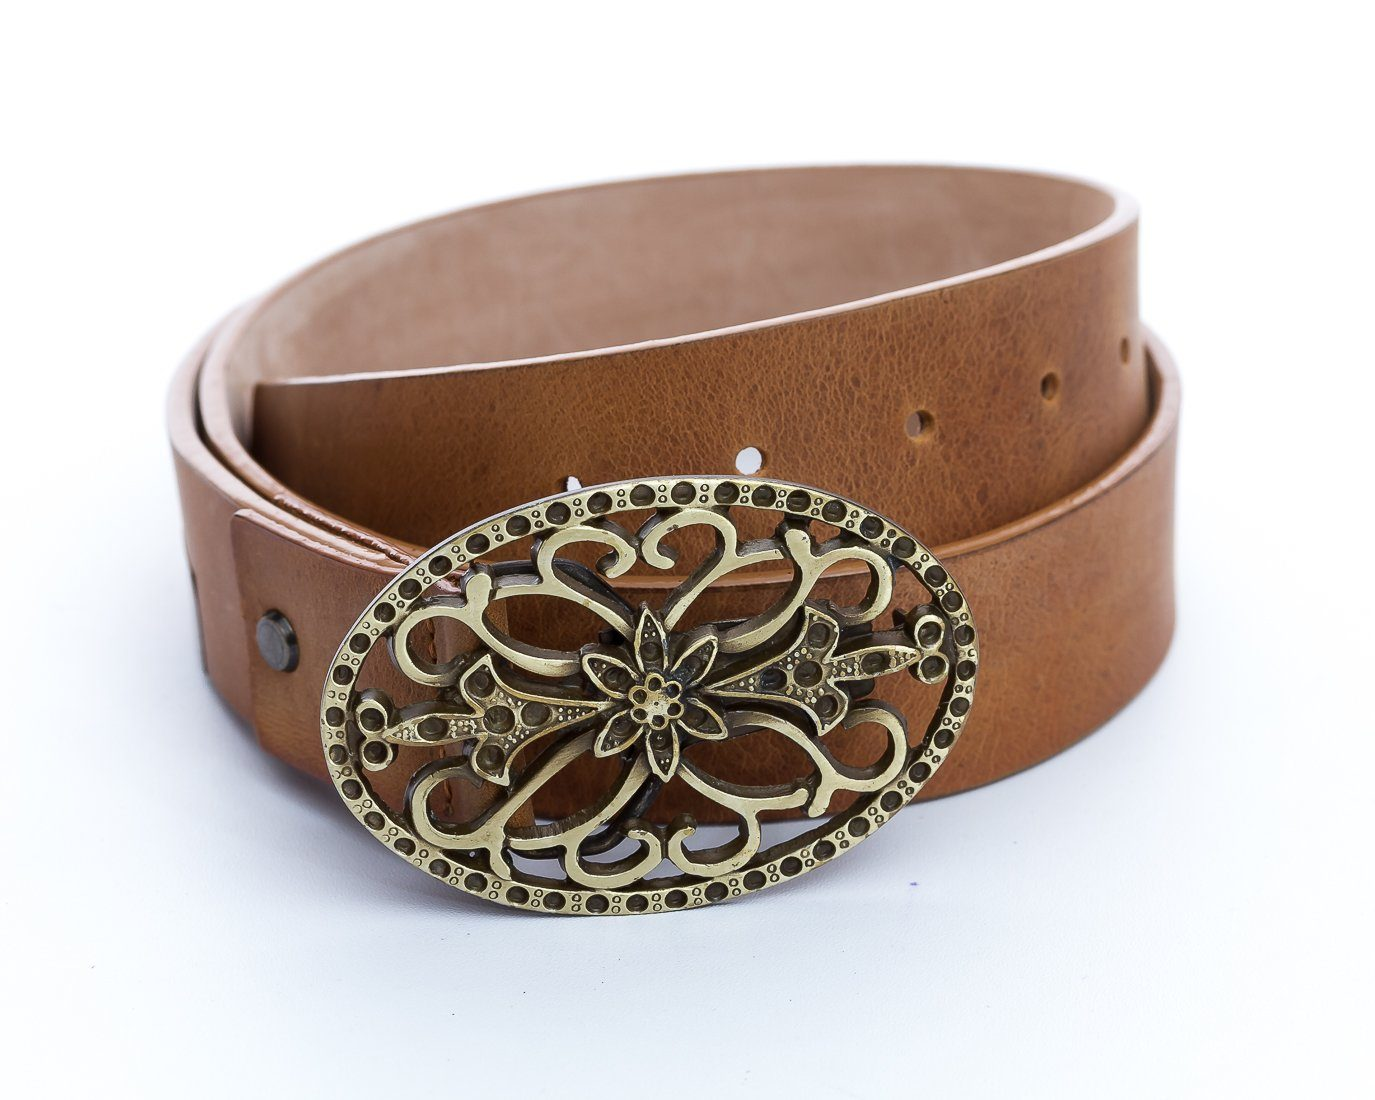 Ancestral Oval Women's Belt - The Gaspy Collection